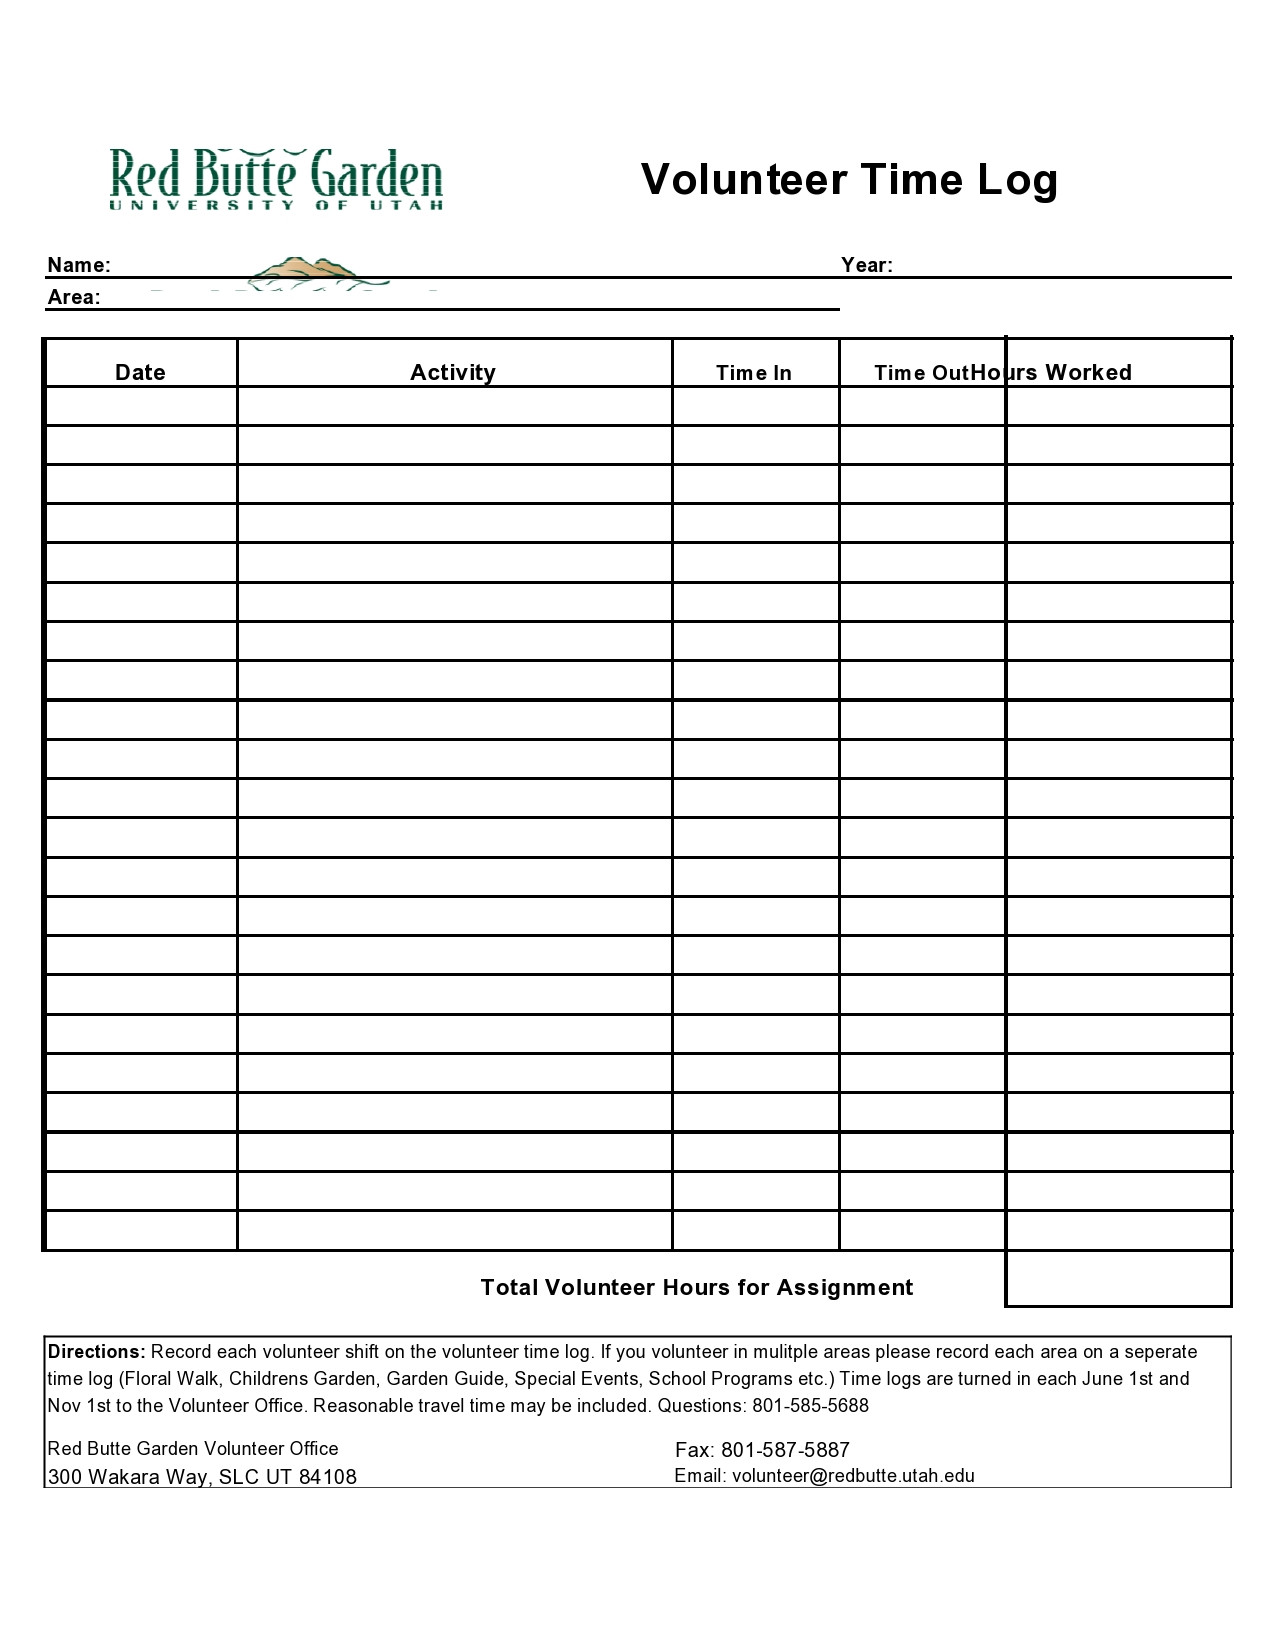 Volunteer Hours Log Template